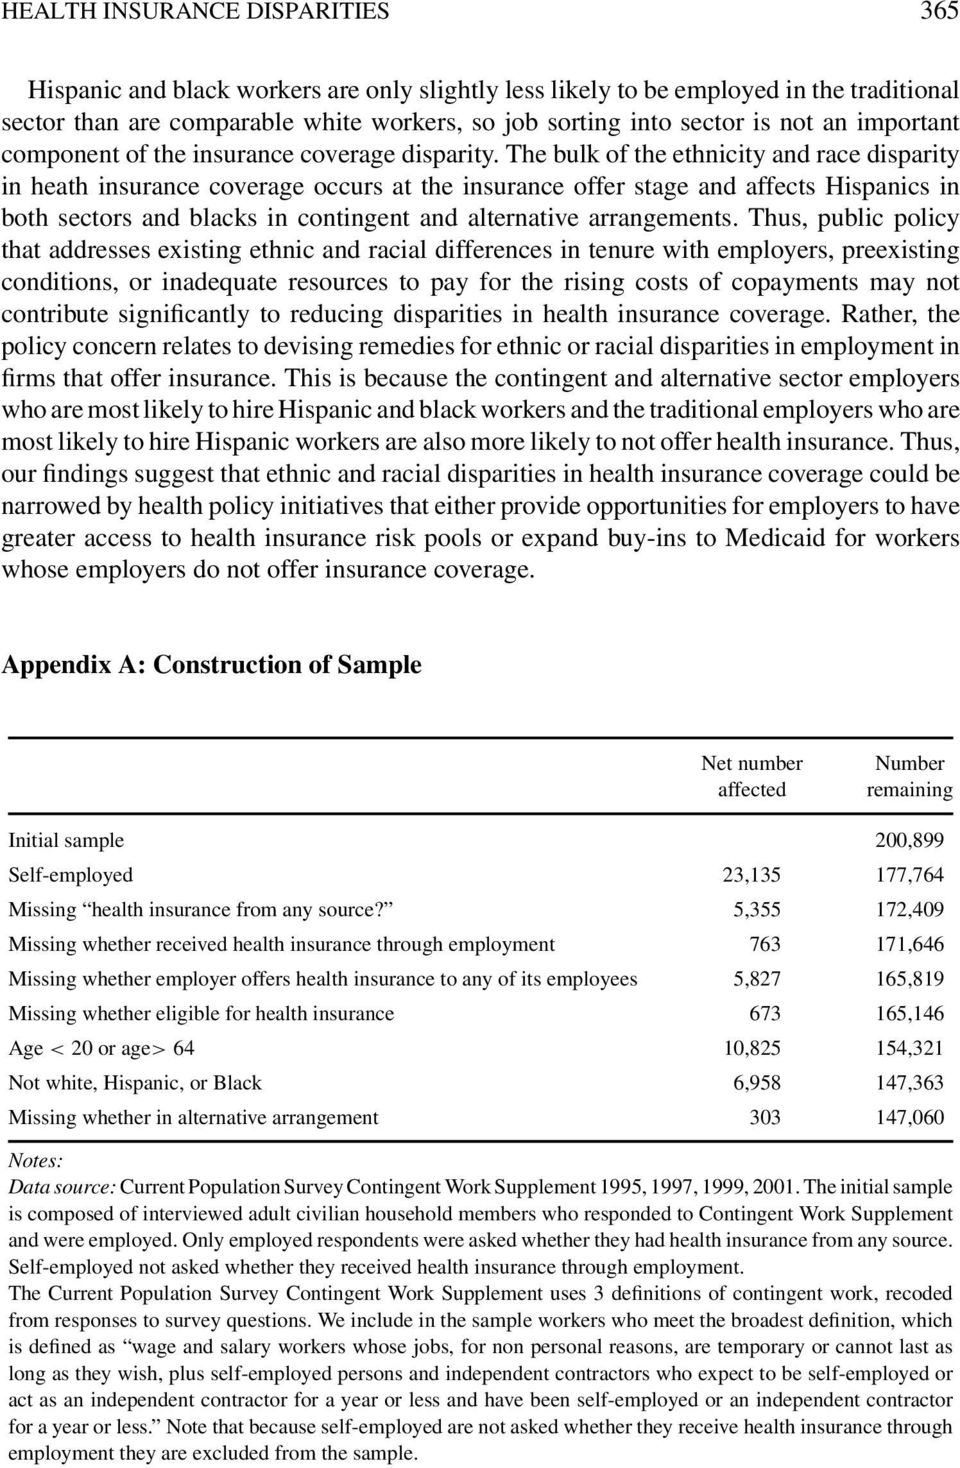 The bulk of the ethnicity and race disparity in heath insurance coverage occurs at the insurance offer stage and affects Hispanics in both sectors and blacks in contingent and alternative